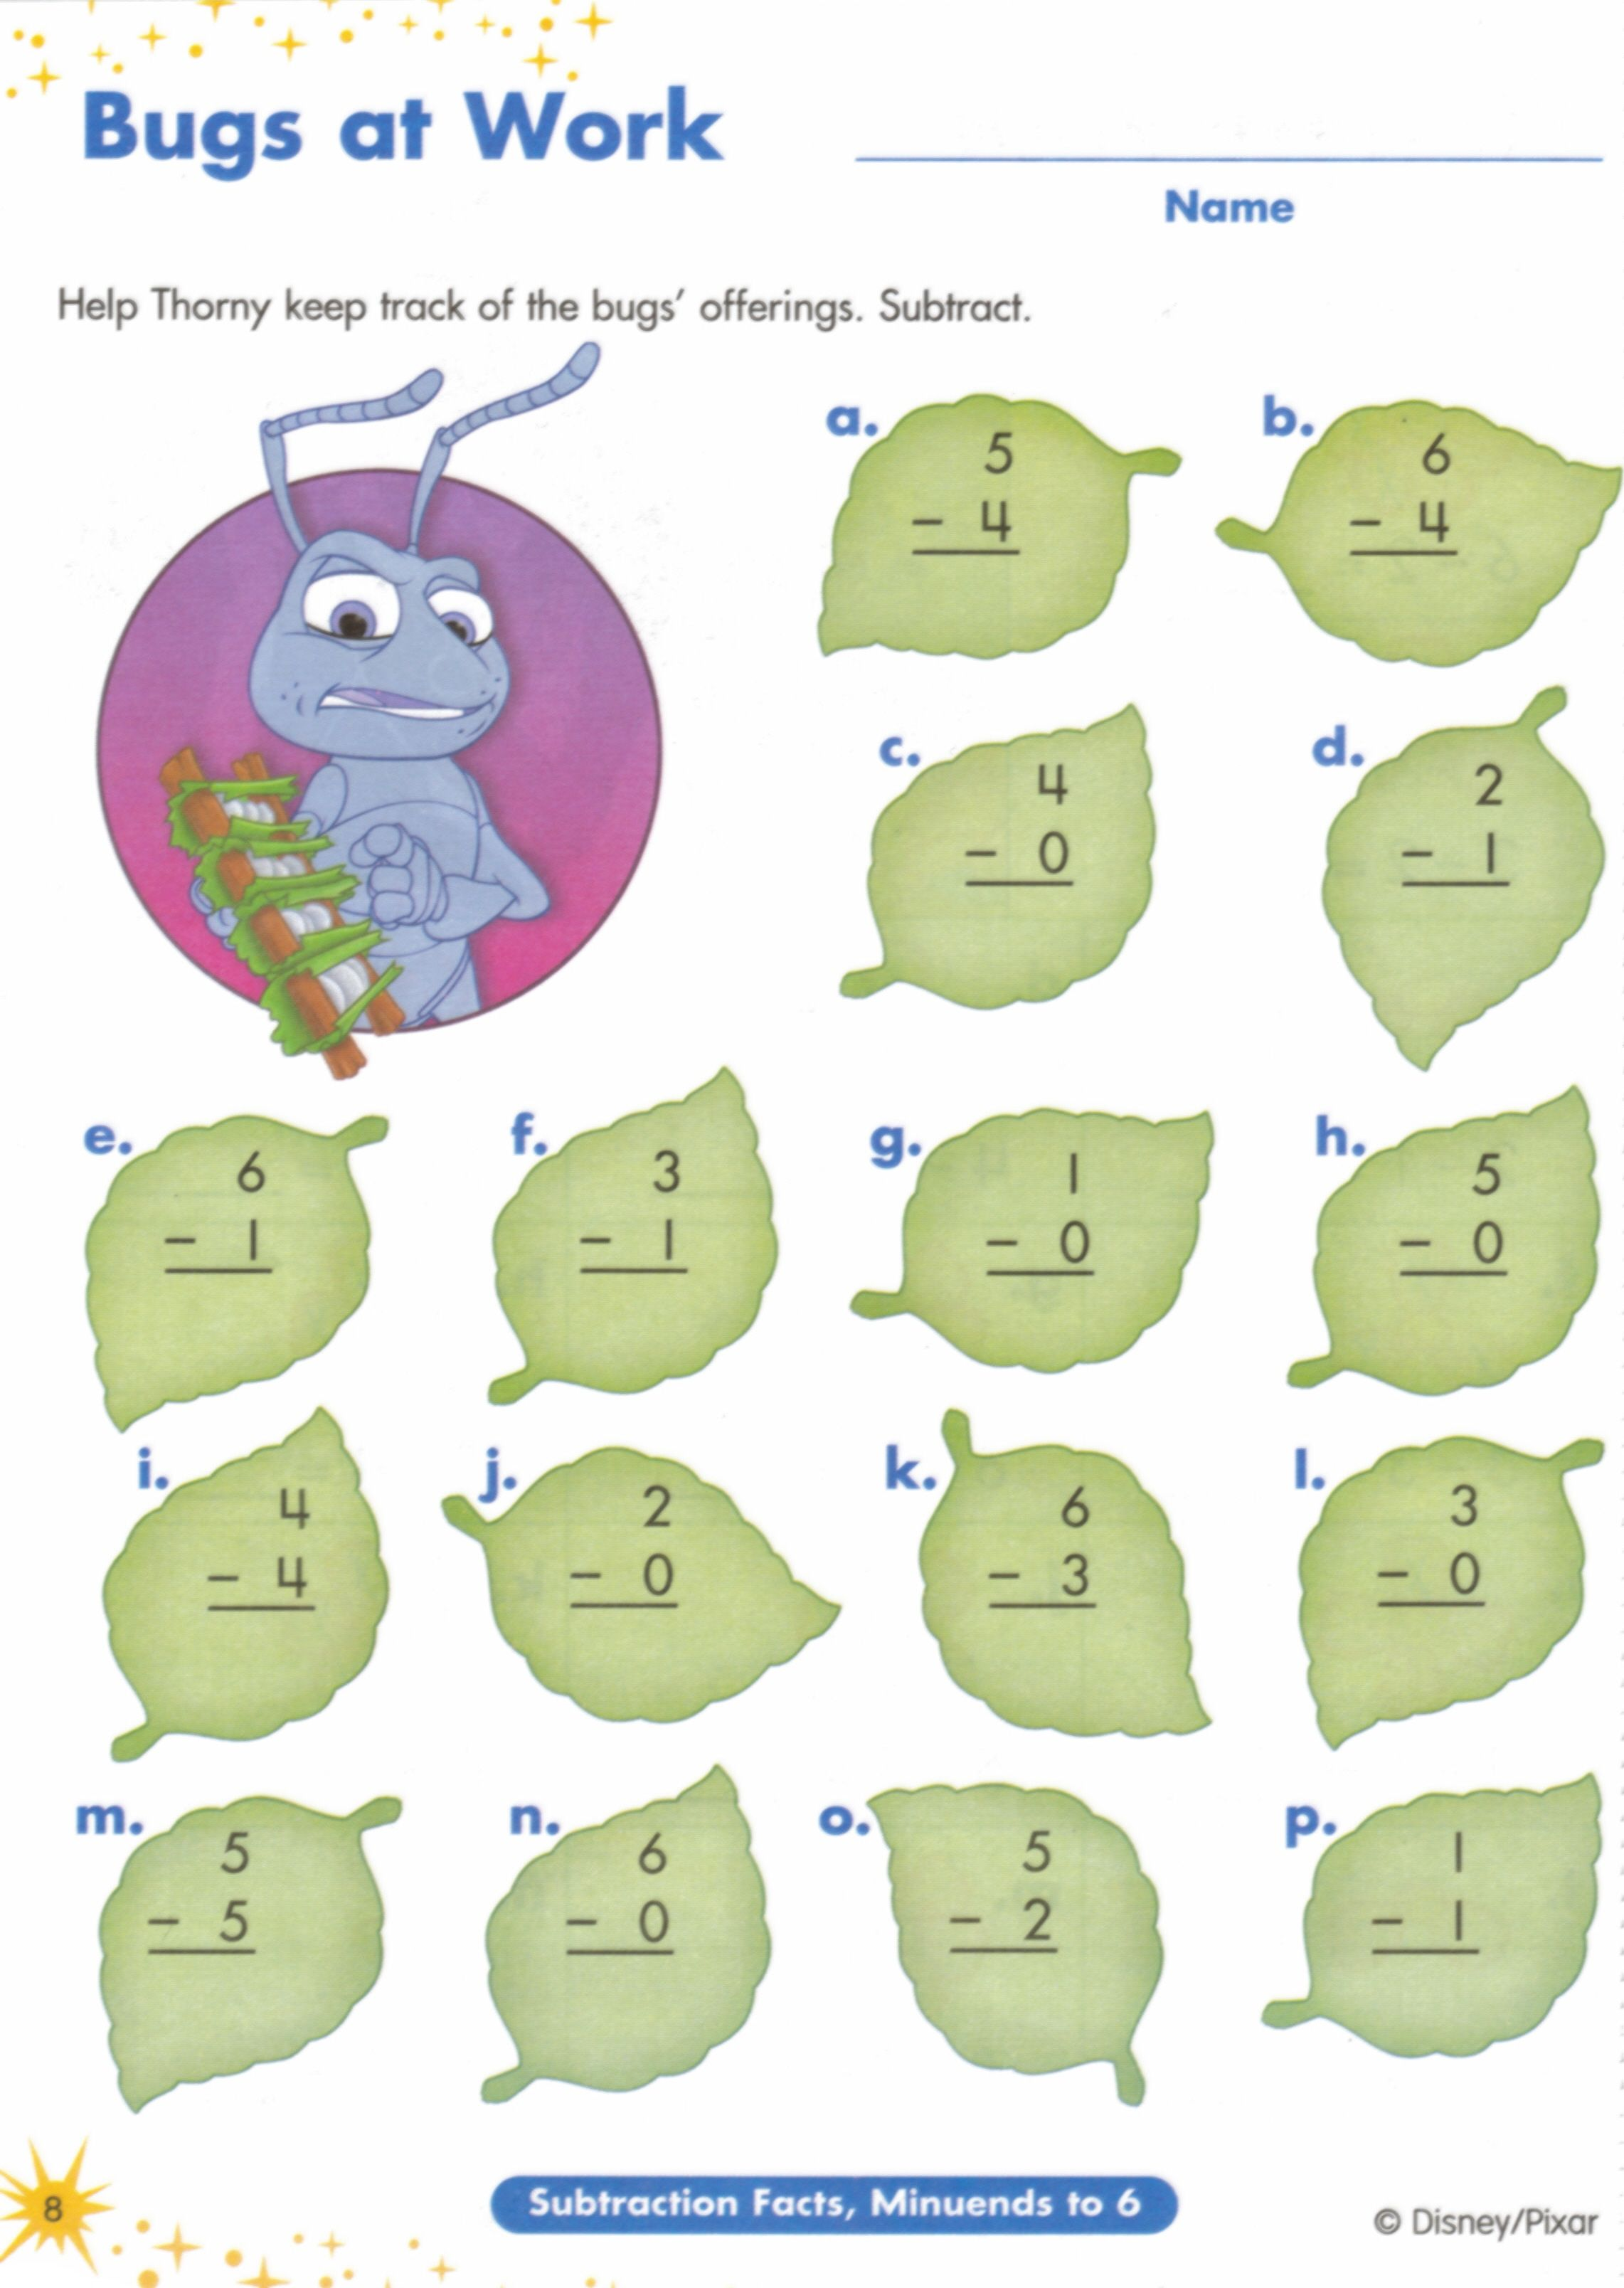 Weirdmailus  Inspiring  Images About Worksheets On Pinterest  Fun Facts For Kids  With Fair  Images About Worksheets On Pinterest  Fun Facts For Kids Earth Day Worksheets And Jungles With Extraordinary Telling Time To The Half Hour Worksheets For First Grade Also Note Taking Worksheets In Addition Th Grade Math Worksheet And Free Worksheets For Middle School As Well As Graphing Characters Worksheets Additionally Resistor Color Code Worksheet From Pinterestcom With Weirdmailus  Fair  Images About Worksheets On Pinterest  Fun Facts For Kids  With Extraordinary  Images About Worksheets On Pinterest  Fun Facts For Kids Earth Day Worksheets And Jungles And Inspiring Telling Time To The Half Hour Worksheets For First Grade Also Note Taking Worksheets In Addition Th Grade Math Worksheet From Pinterestcom